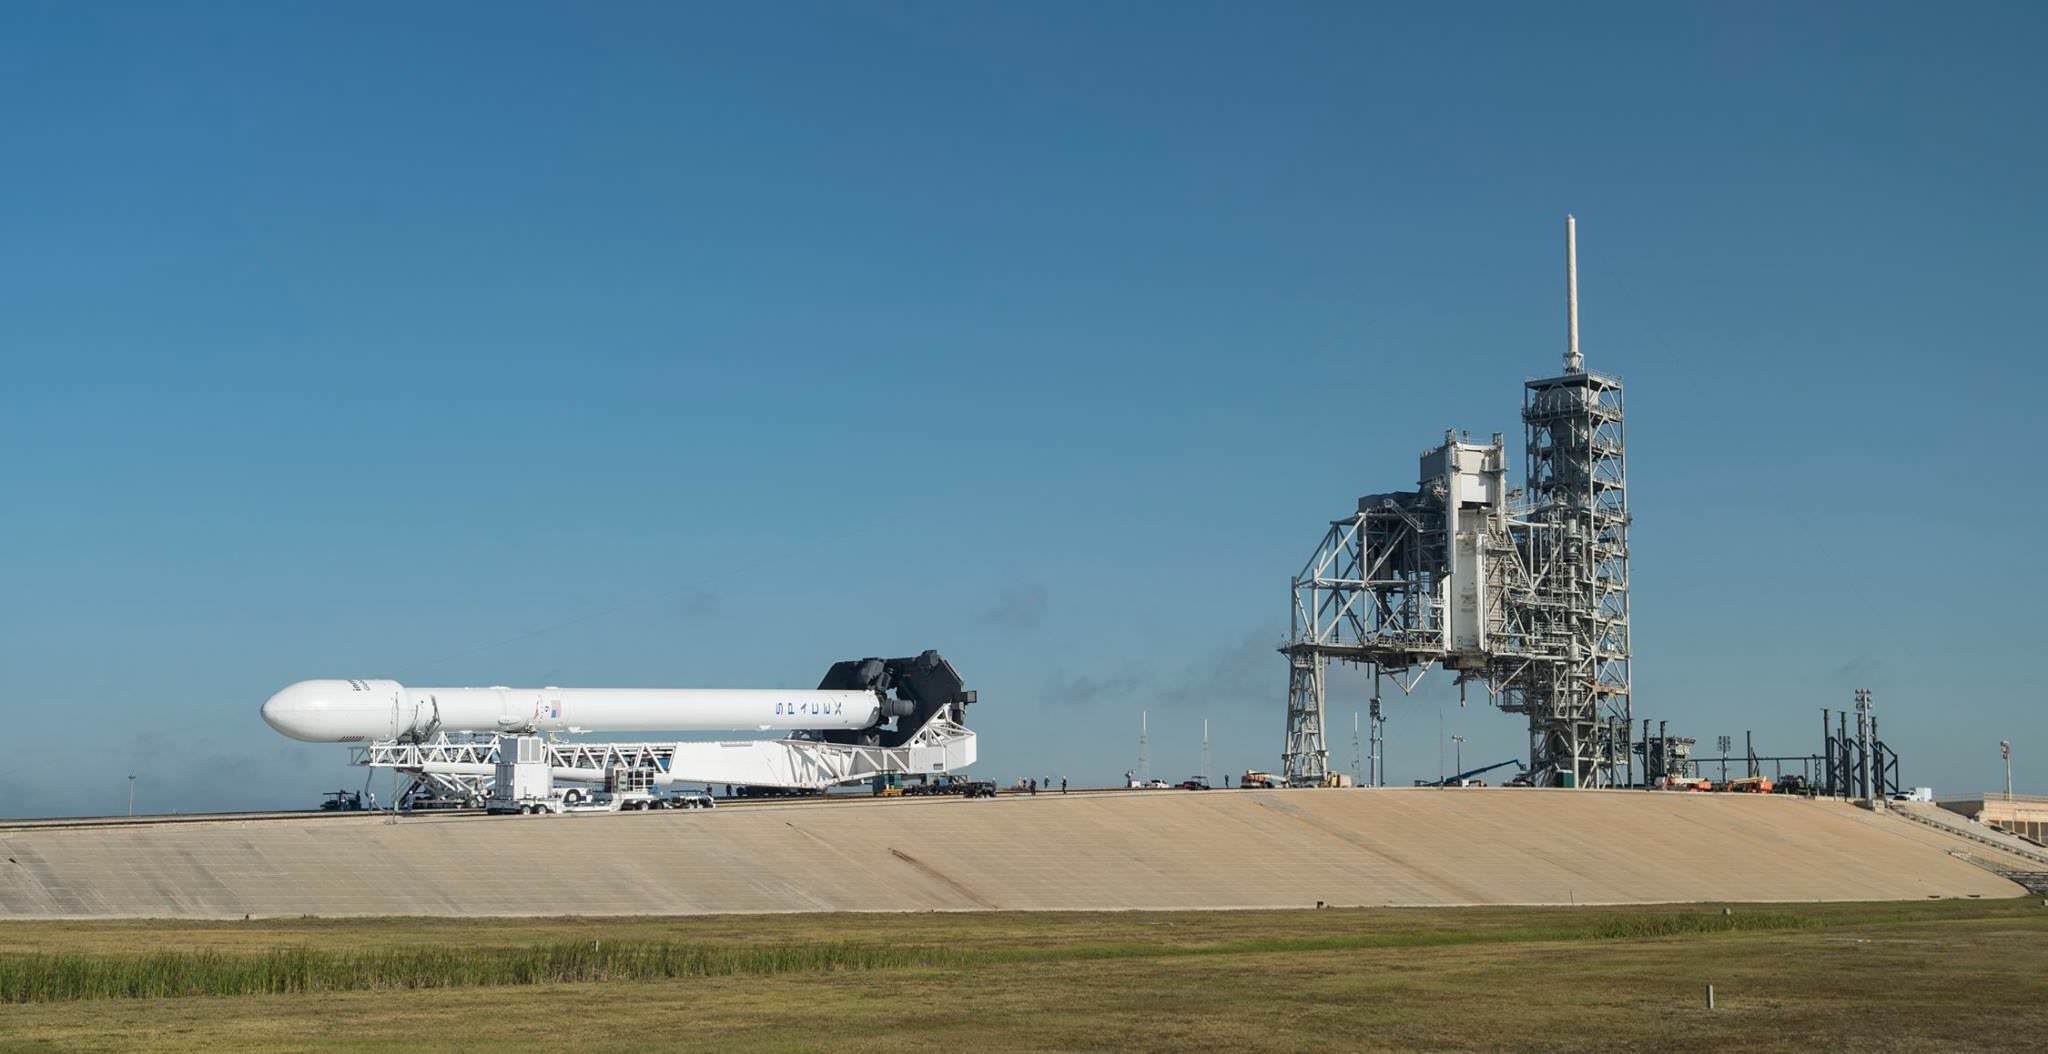 SpaceX launch planned for Monday night